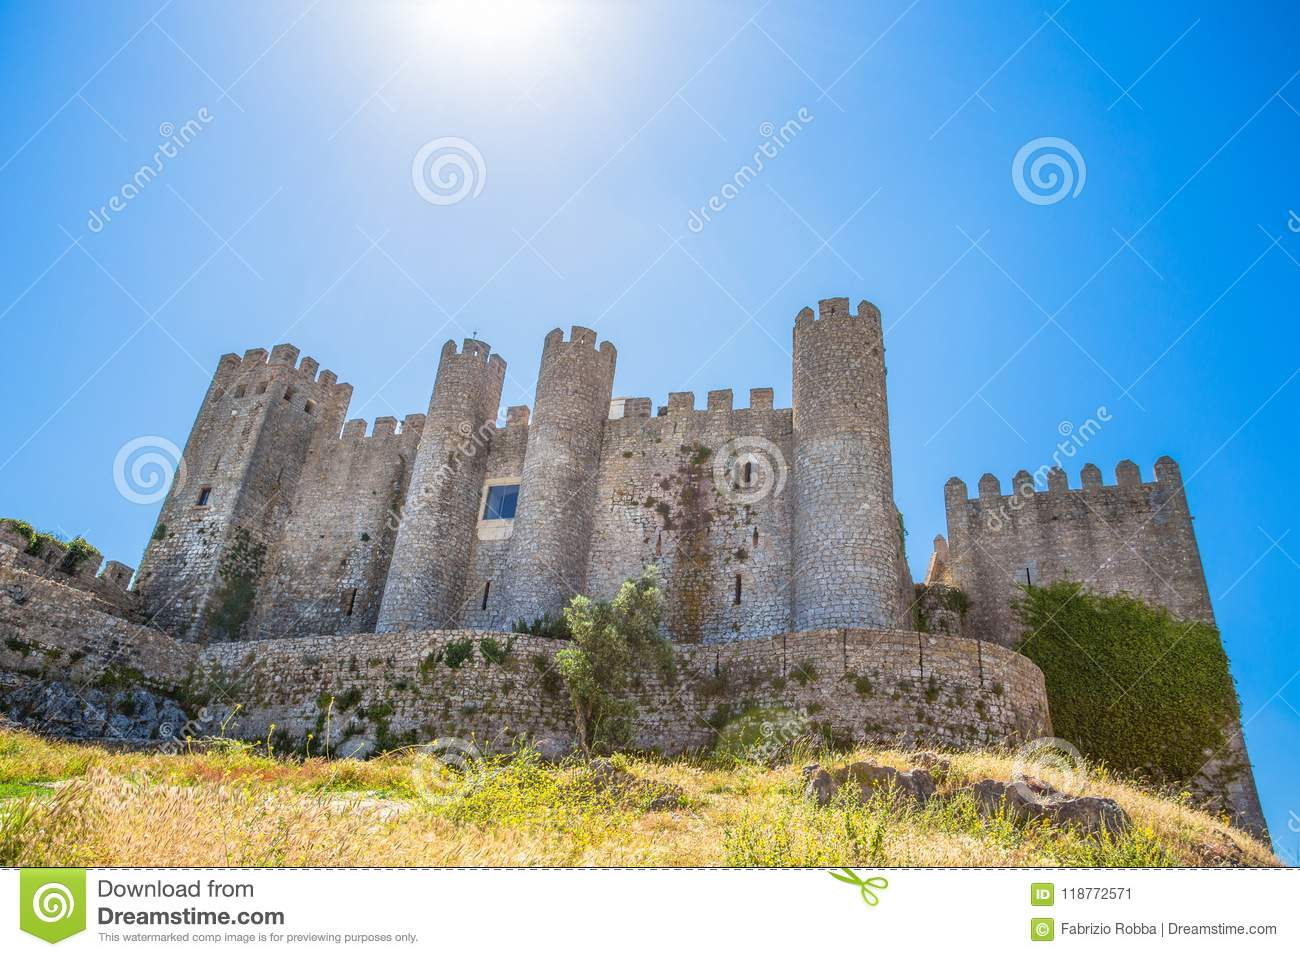 Medieval castle in the portuguese village of Obidos/ Castle/ fortress/ Portugal